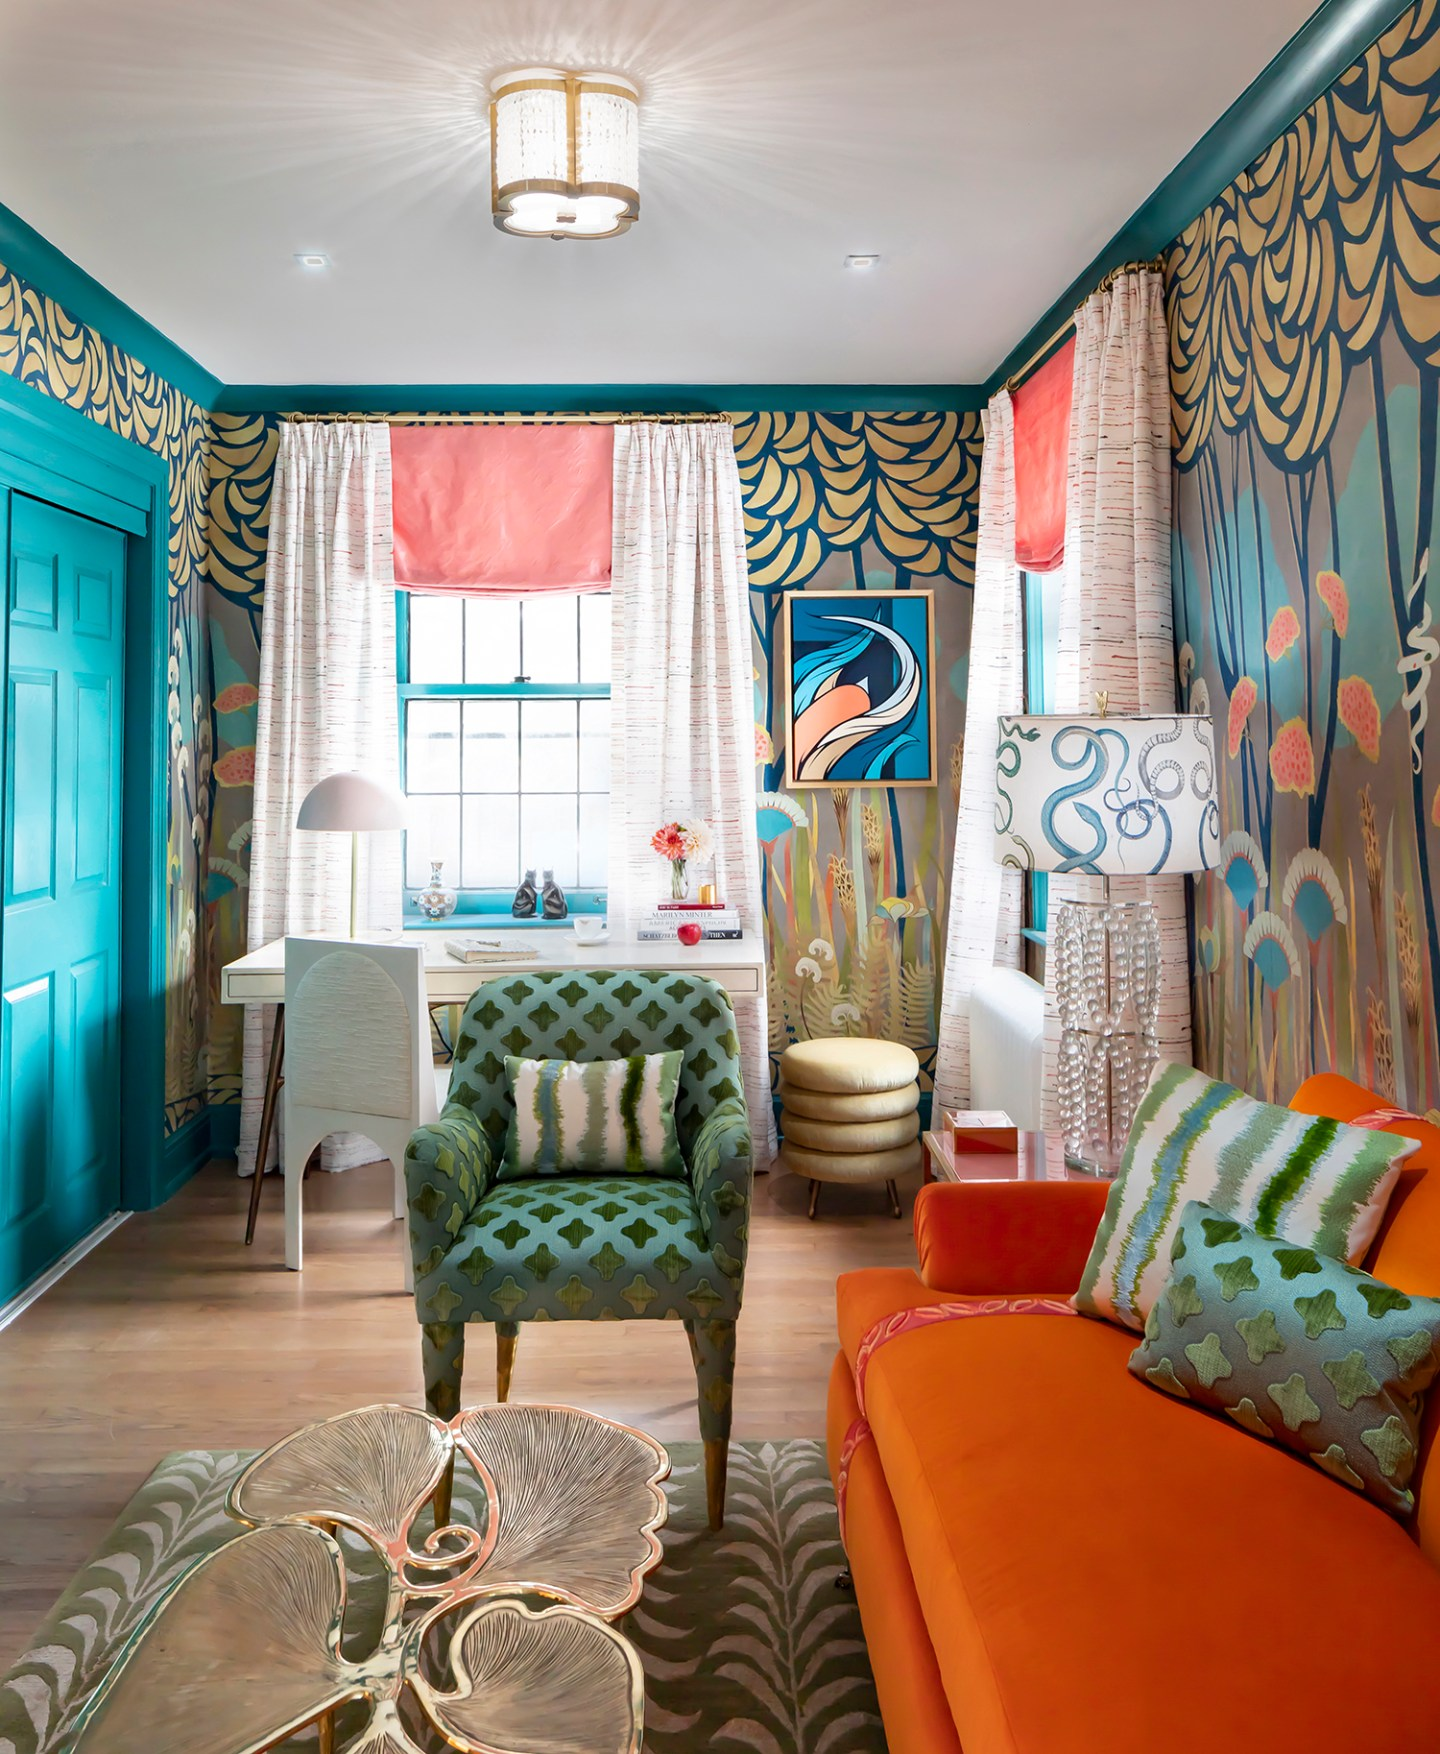 Courtney-McLeod-RMLID-JL-Showhouse_19 Tips for Adding Color and Pattern to a Roomfrom a Louisiana Native